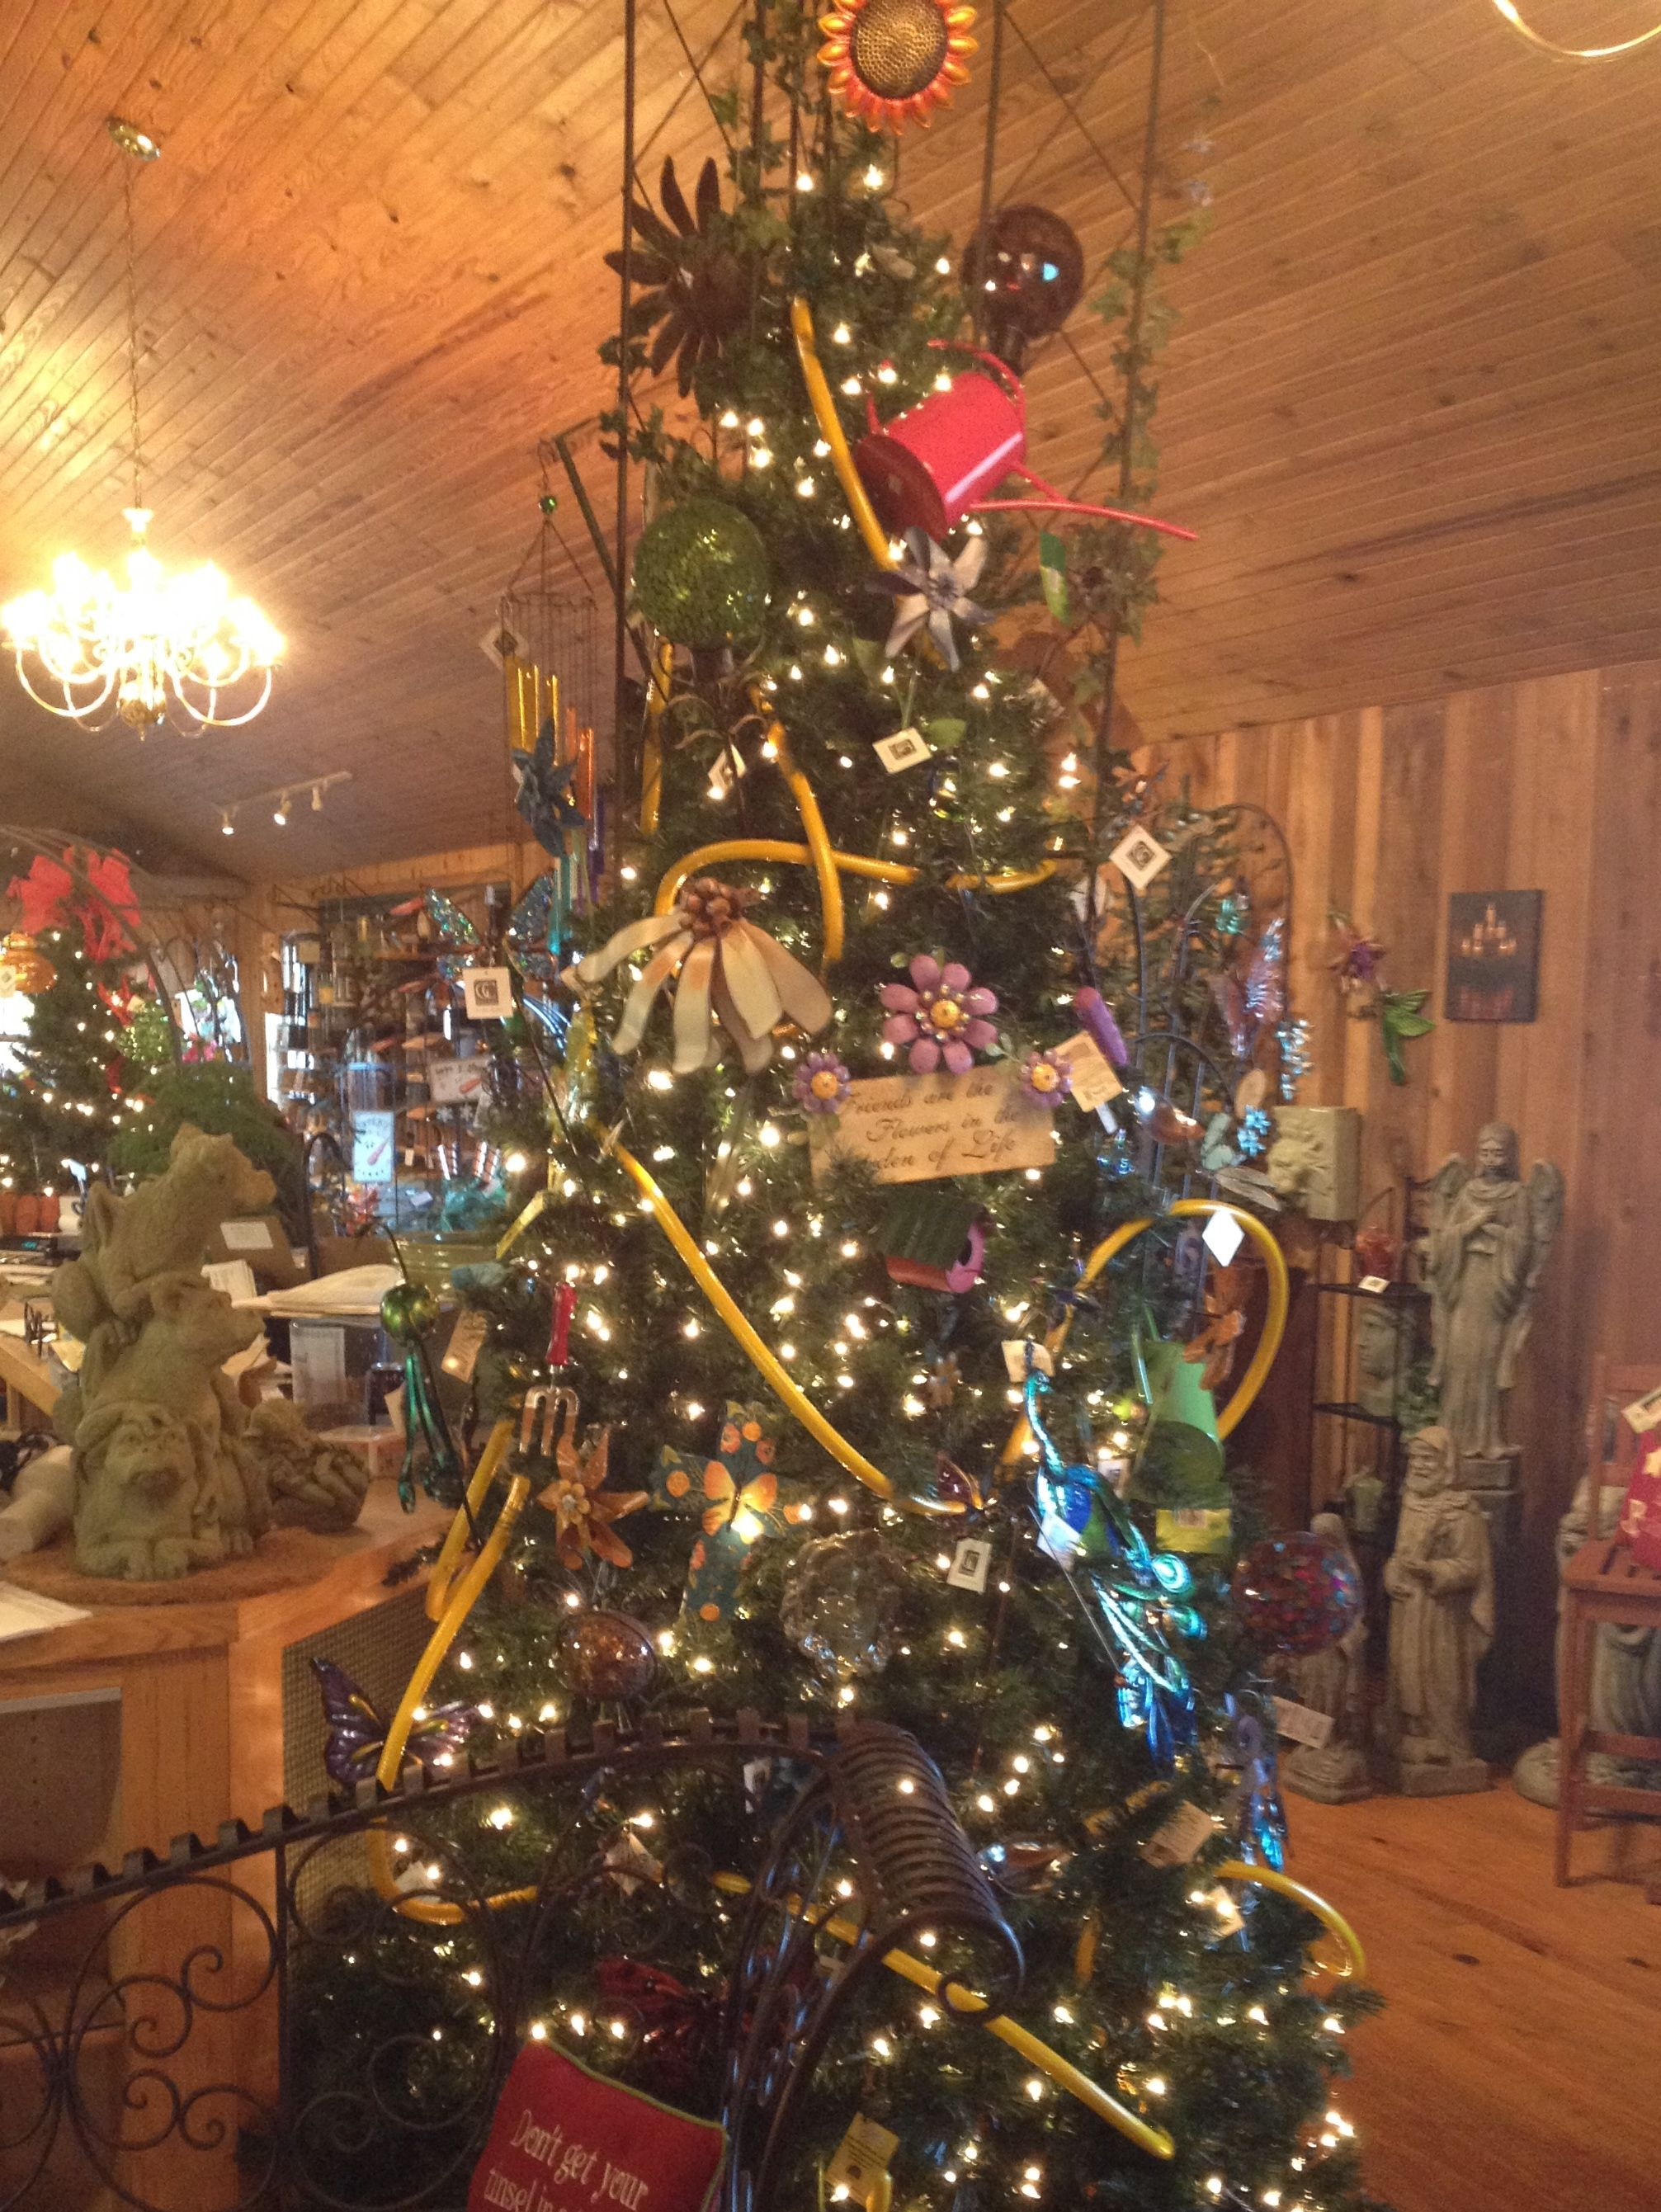 This amazing Christmas tree comes from Wischmeier Nursery in Columbus, IN. Decorated with ...